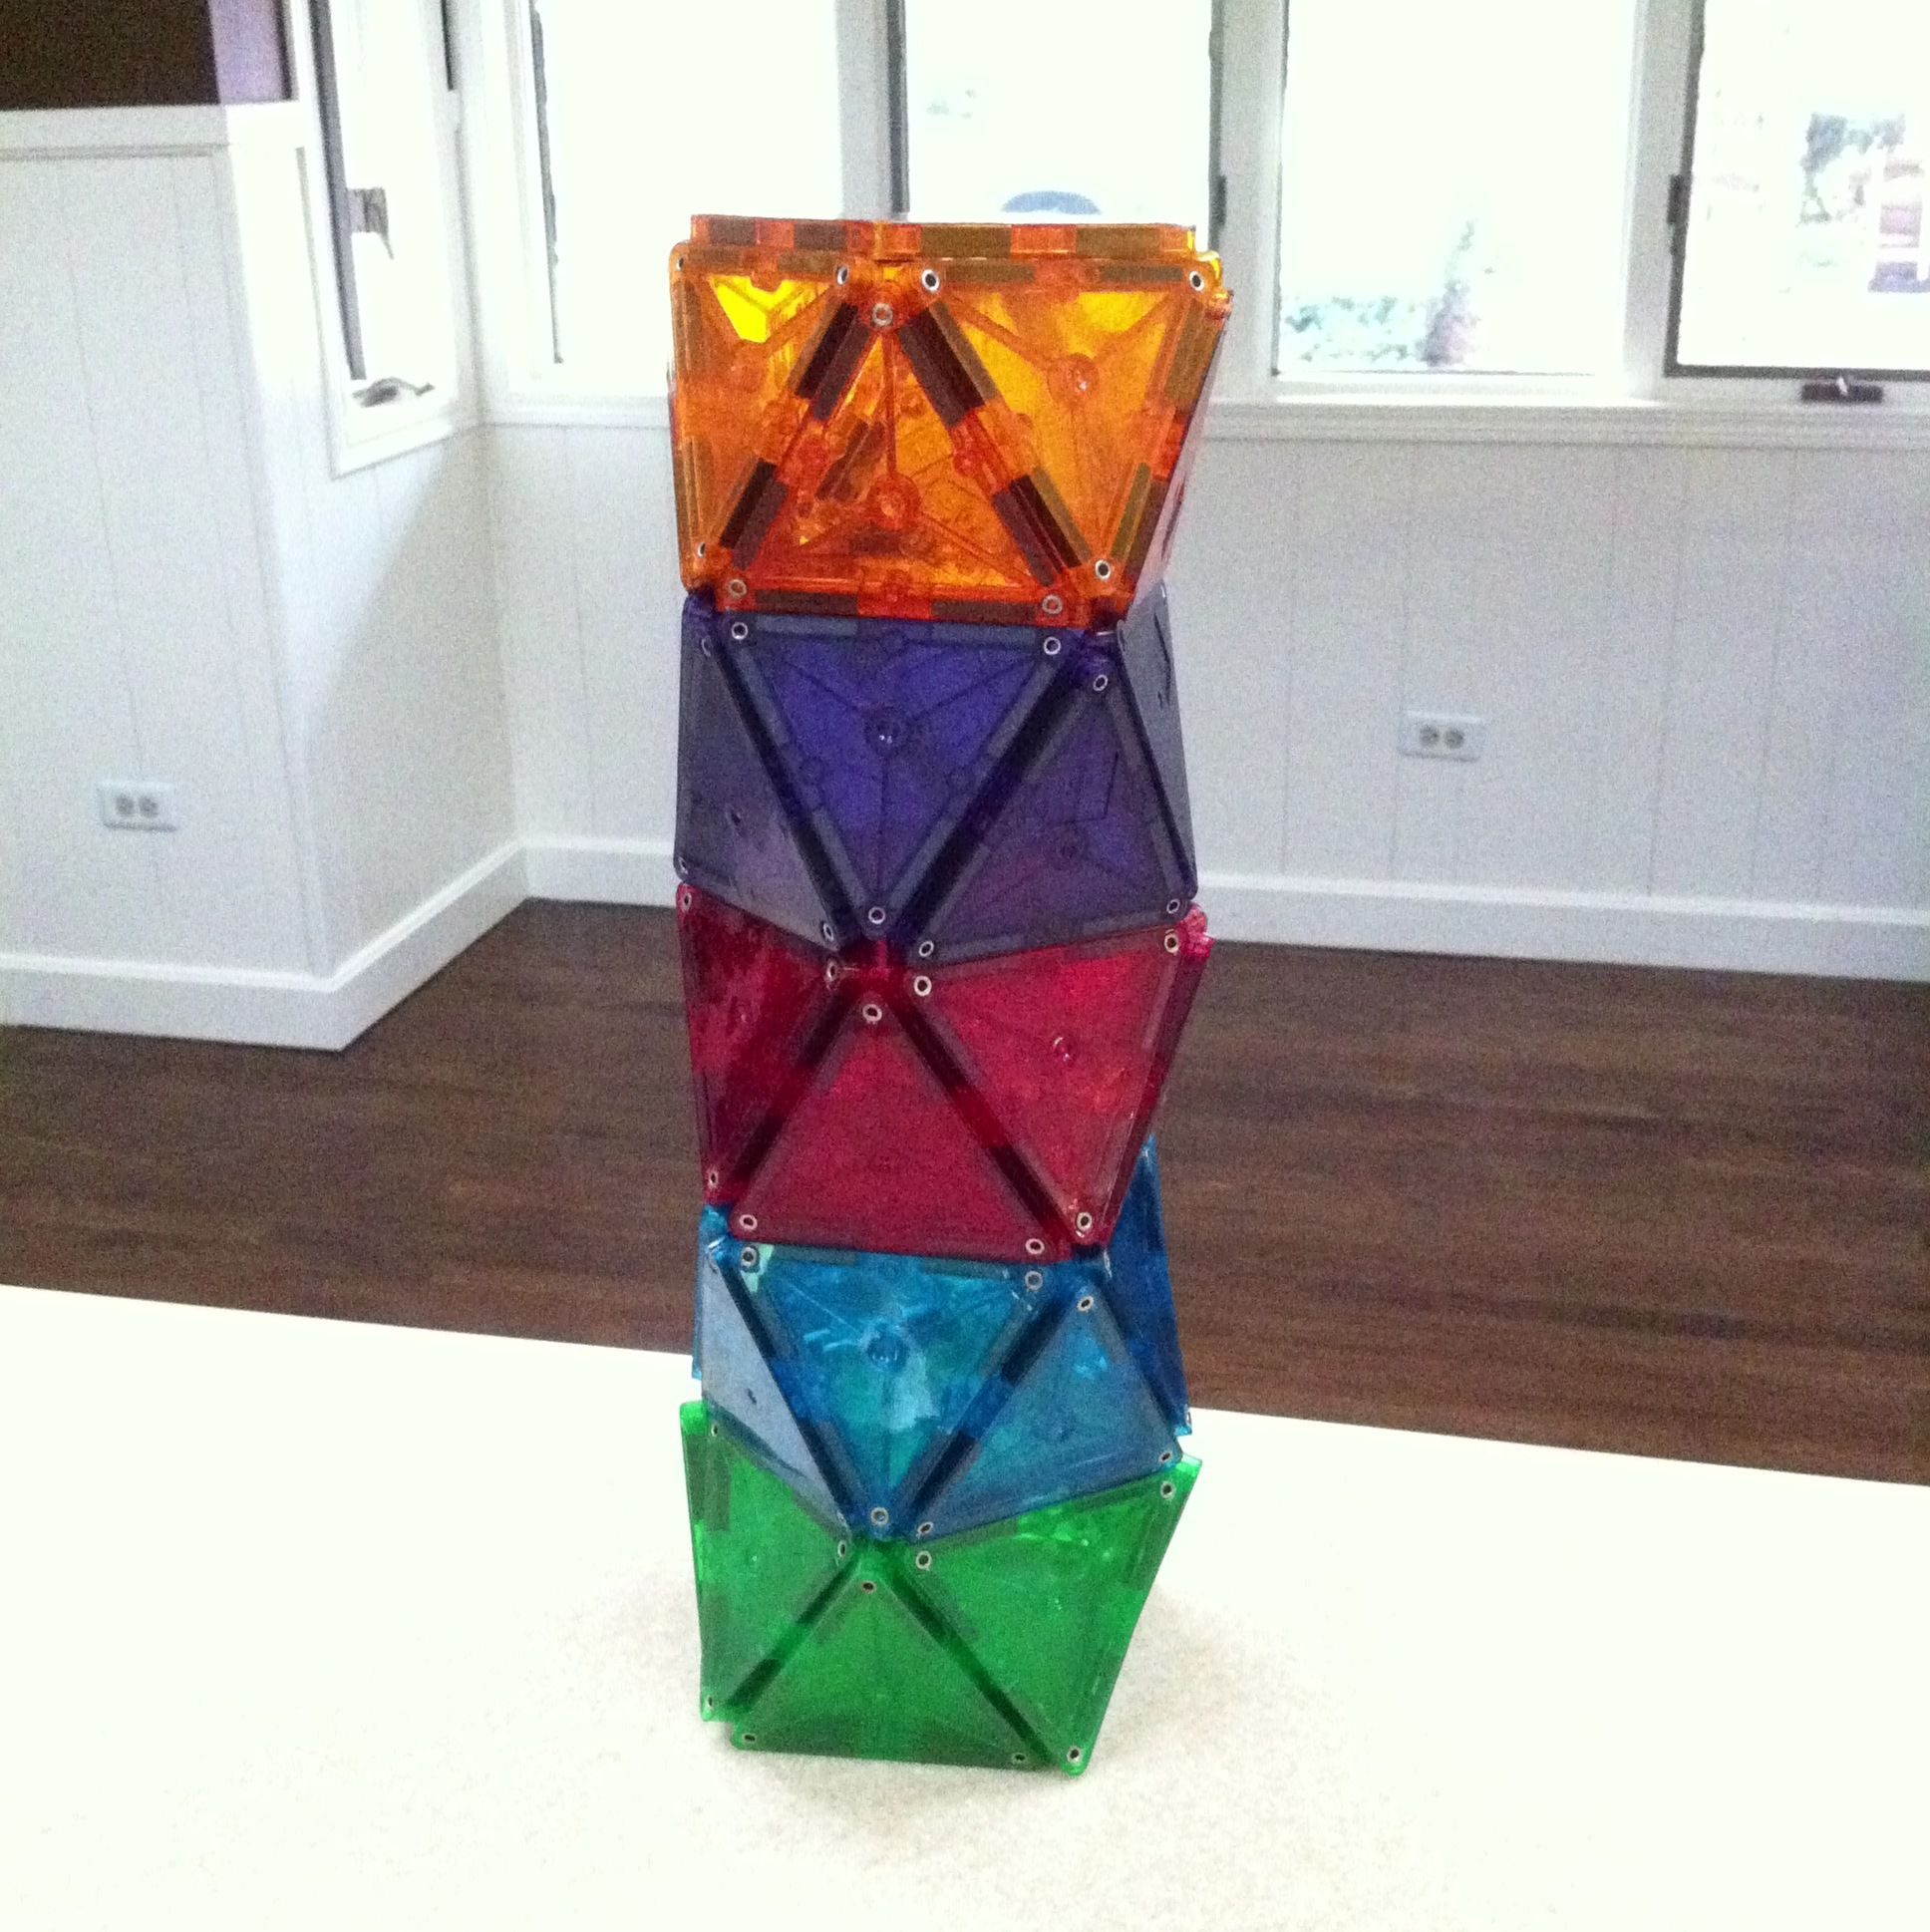 Magna Tiles Challenge Build a tower using this